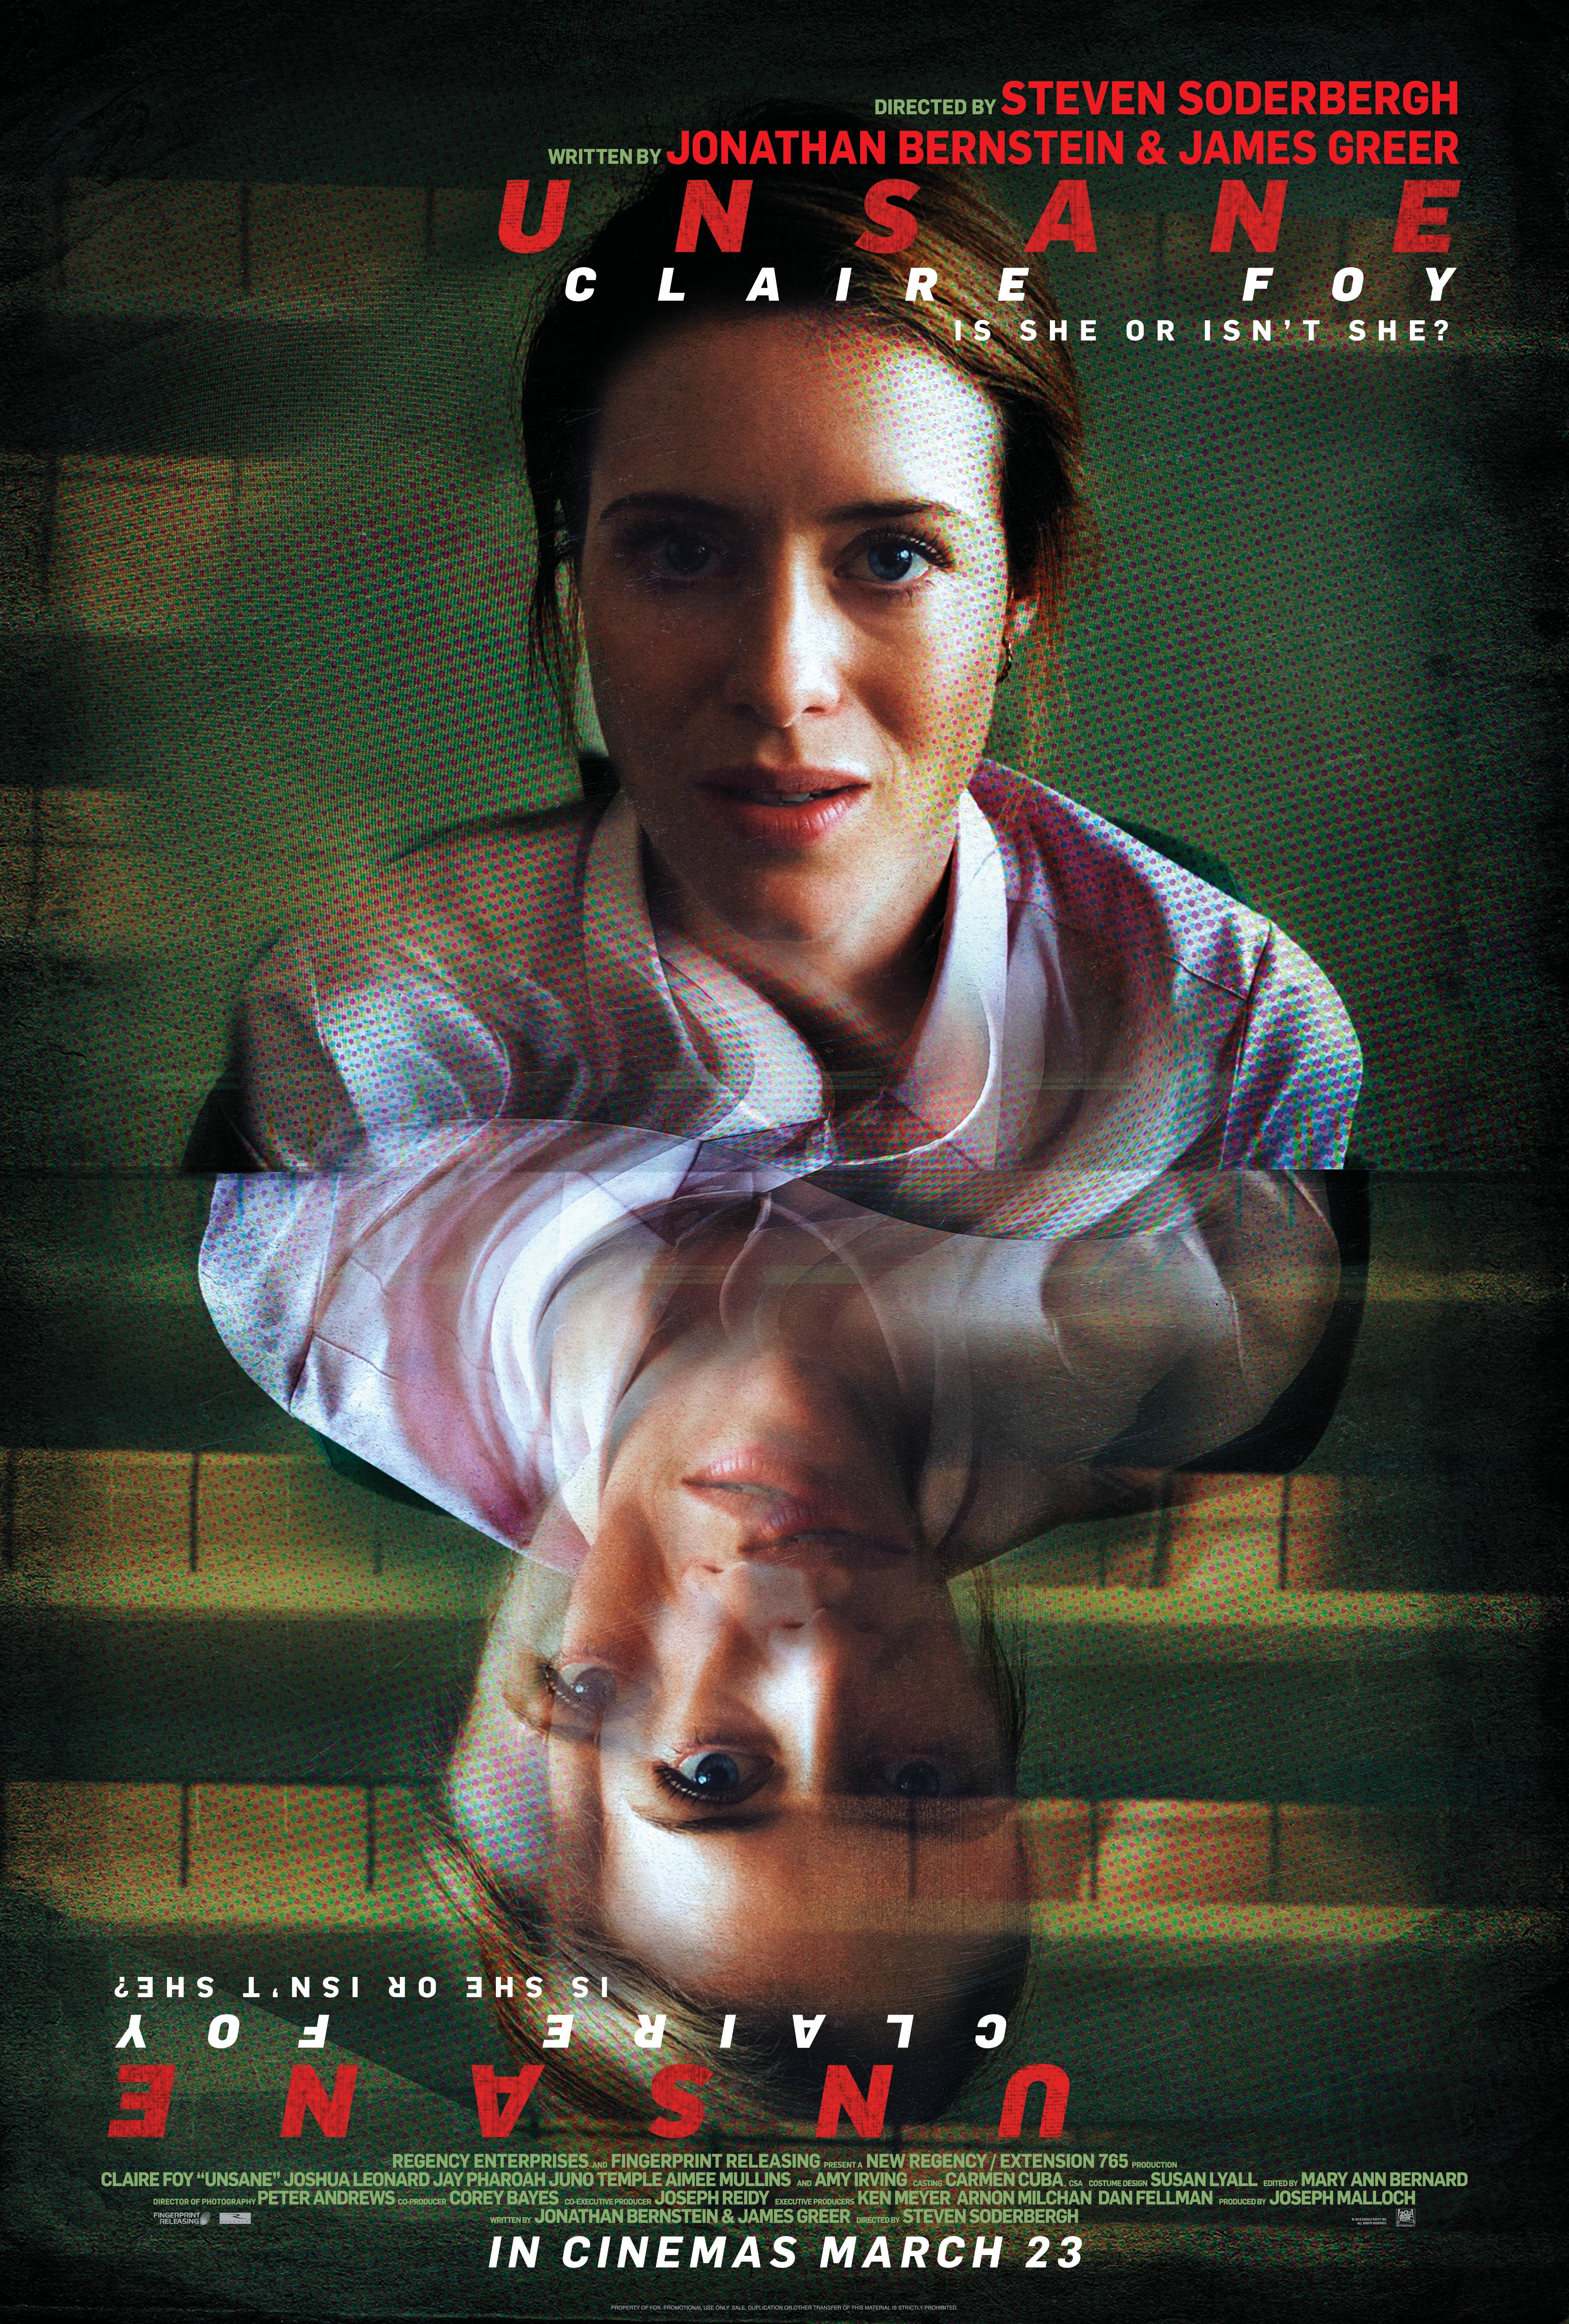 Unsane film review: Claire Foy is under pressure in Steven Soderbergh's nail-biting horror